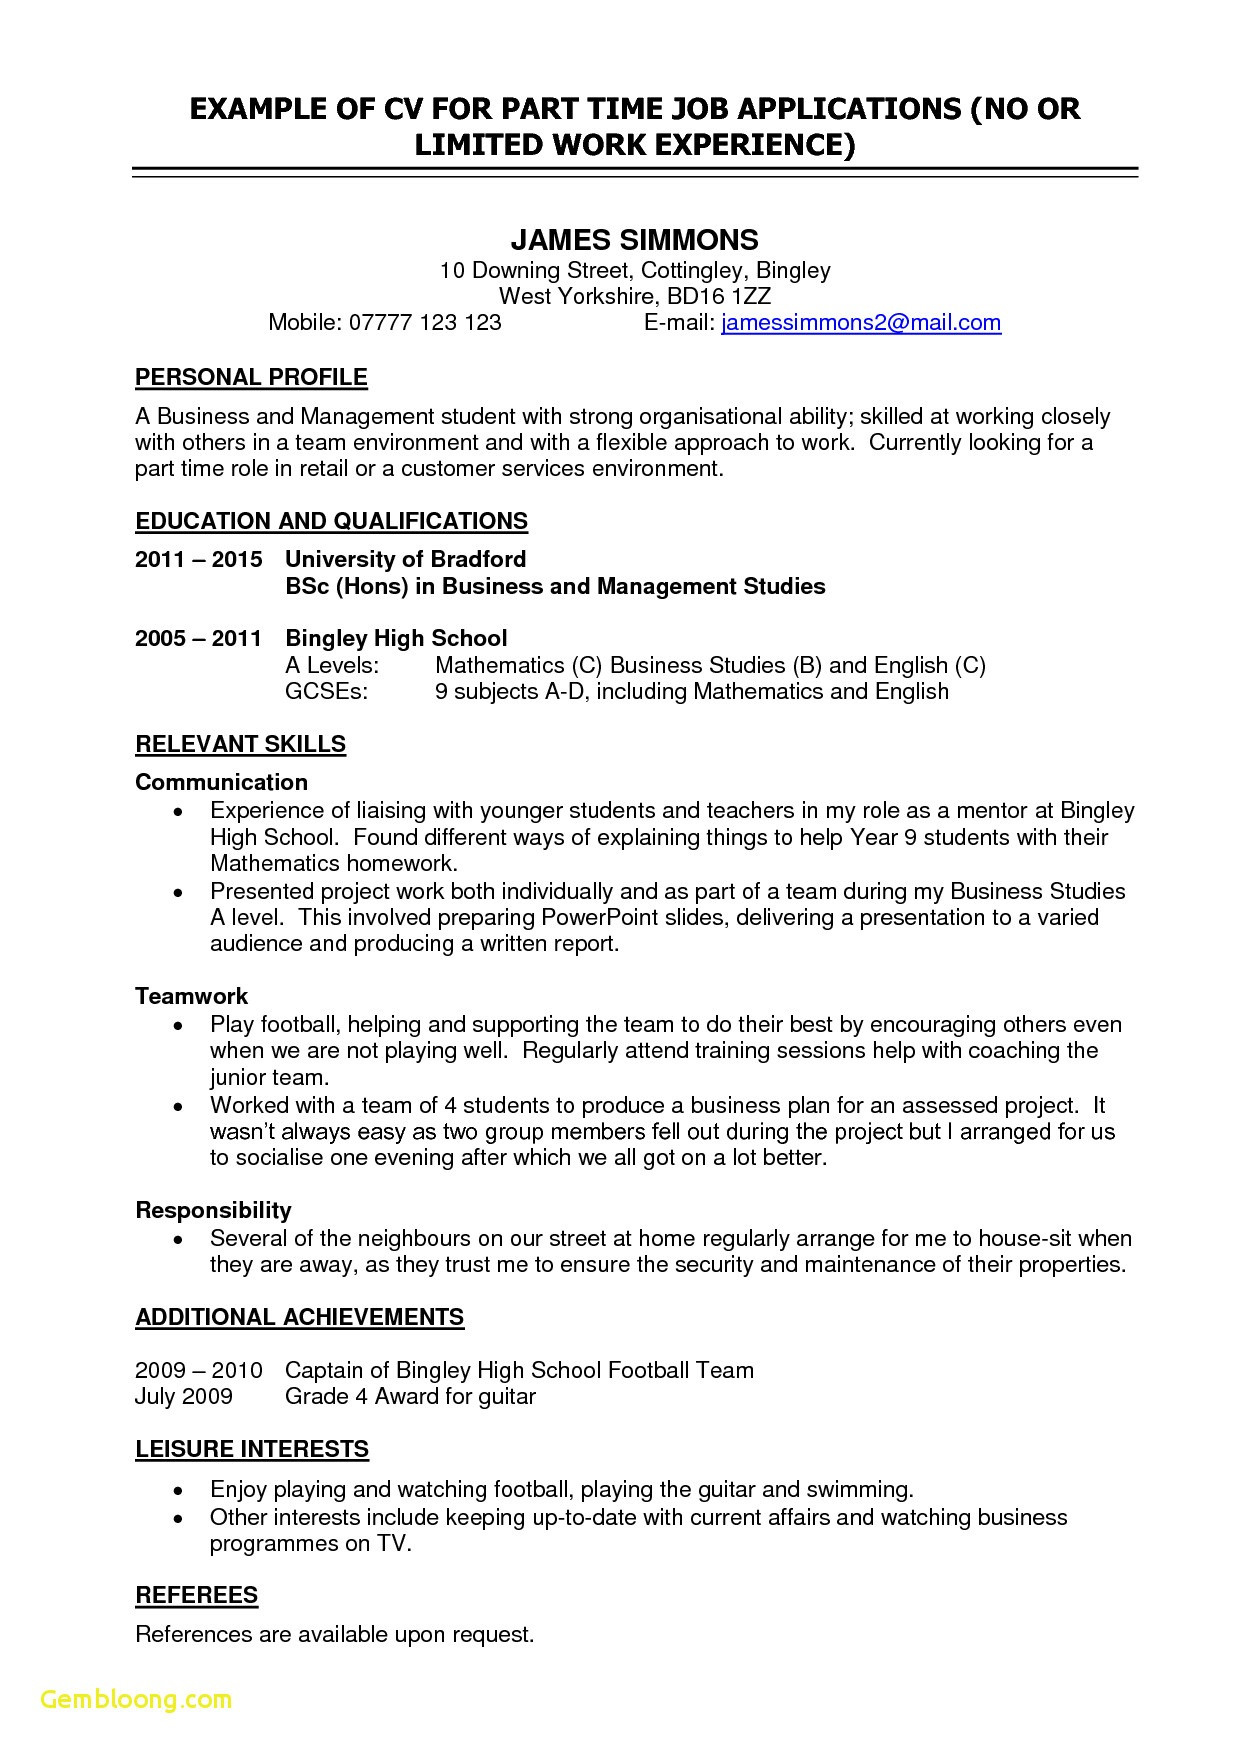 Football Resume Template - Resume Template for College Student Example College Resume